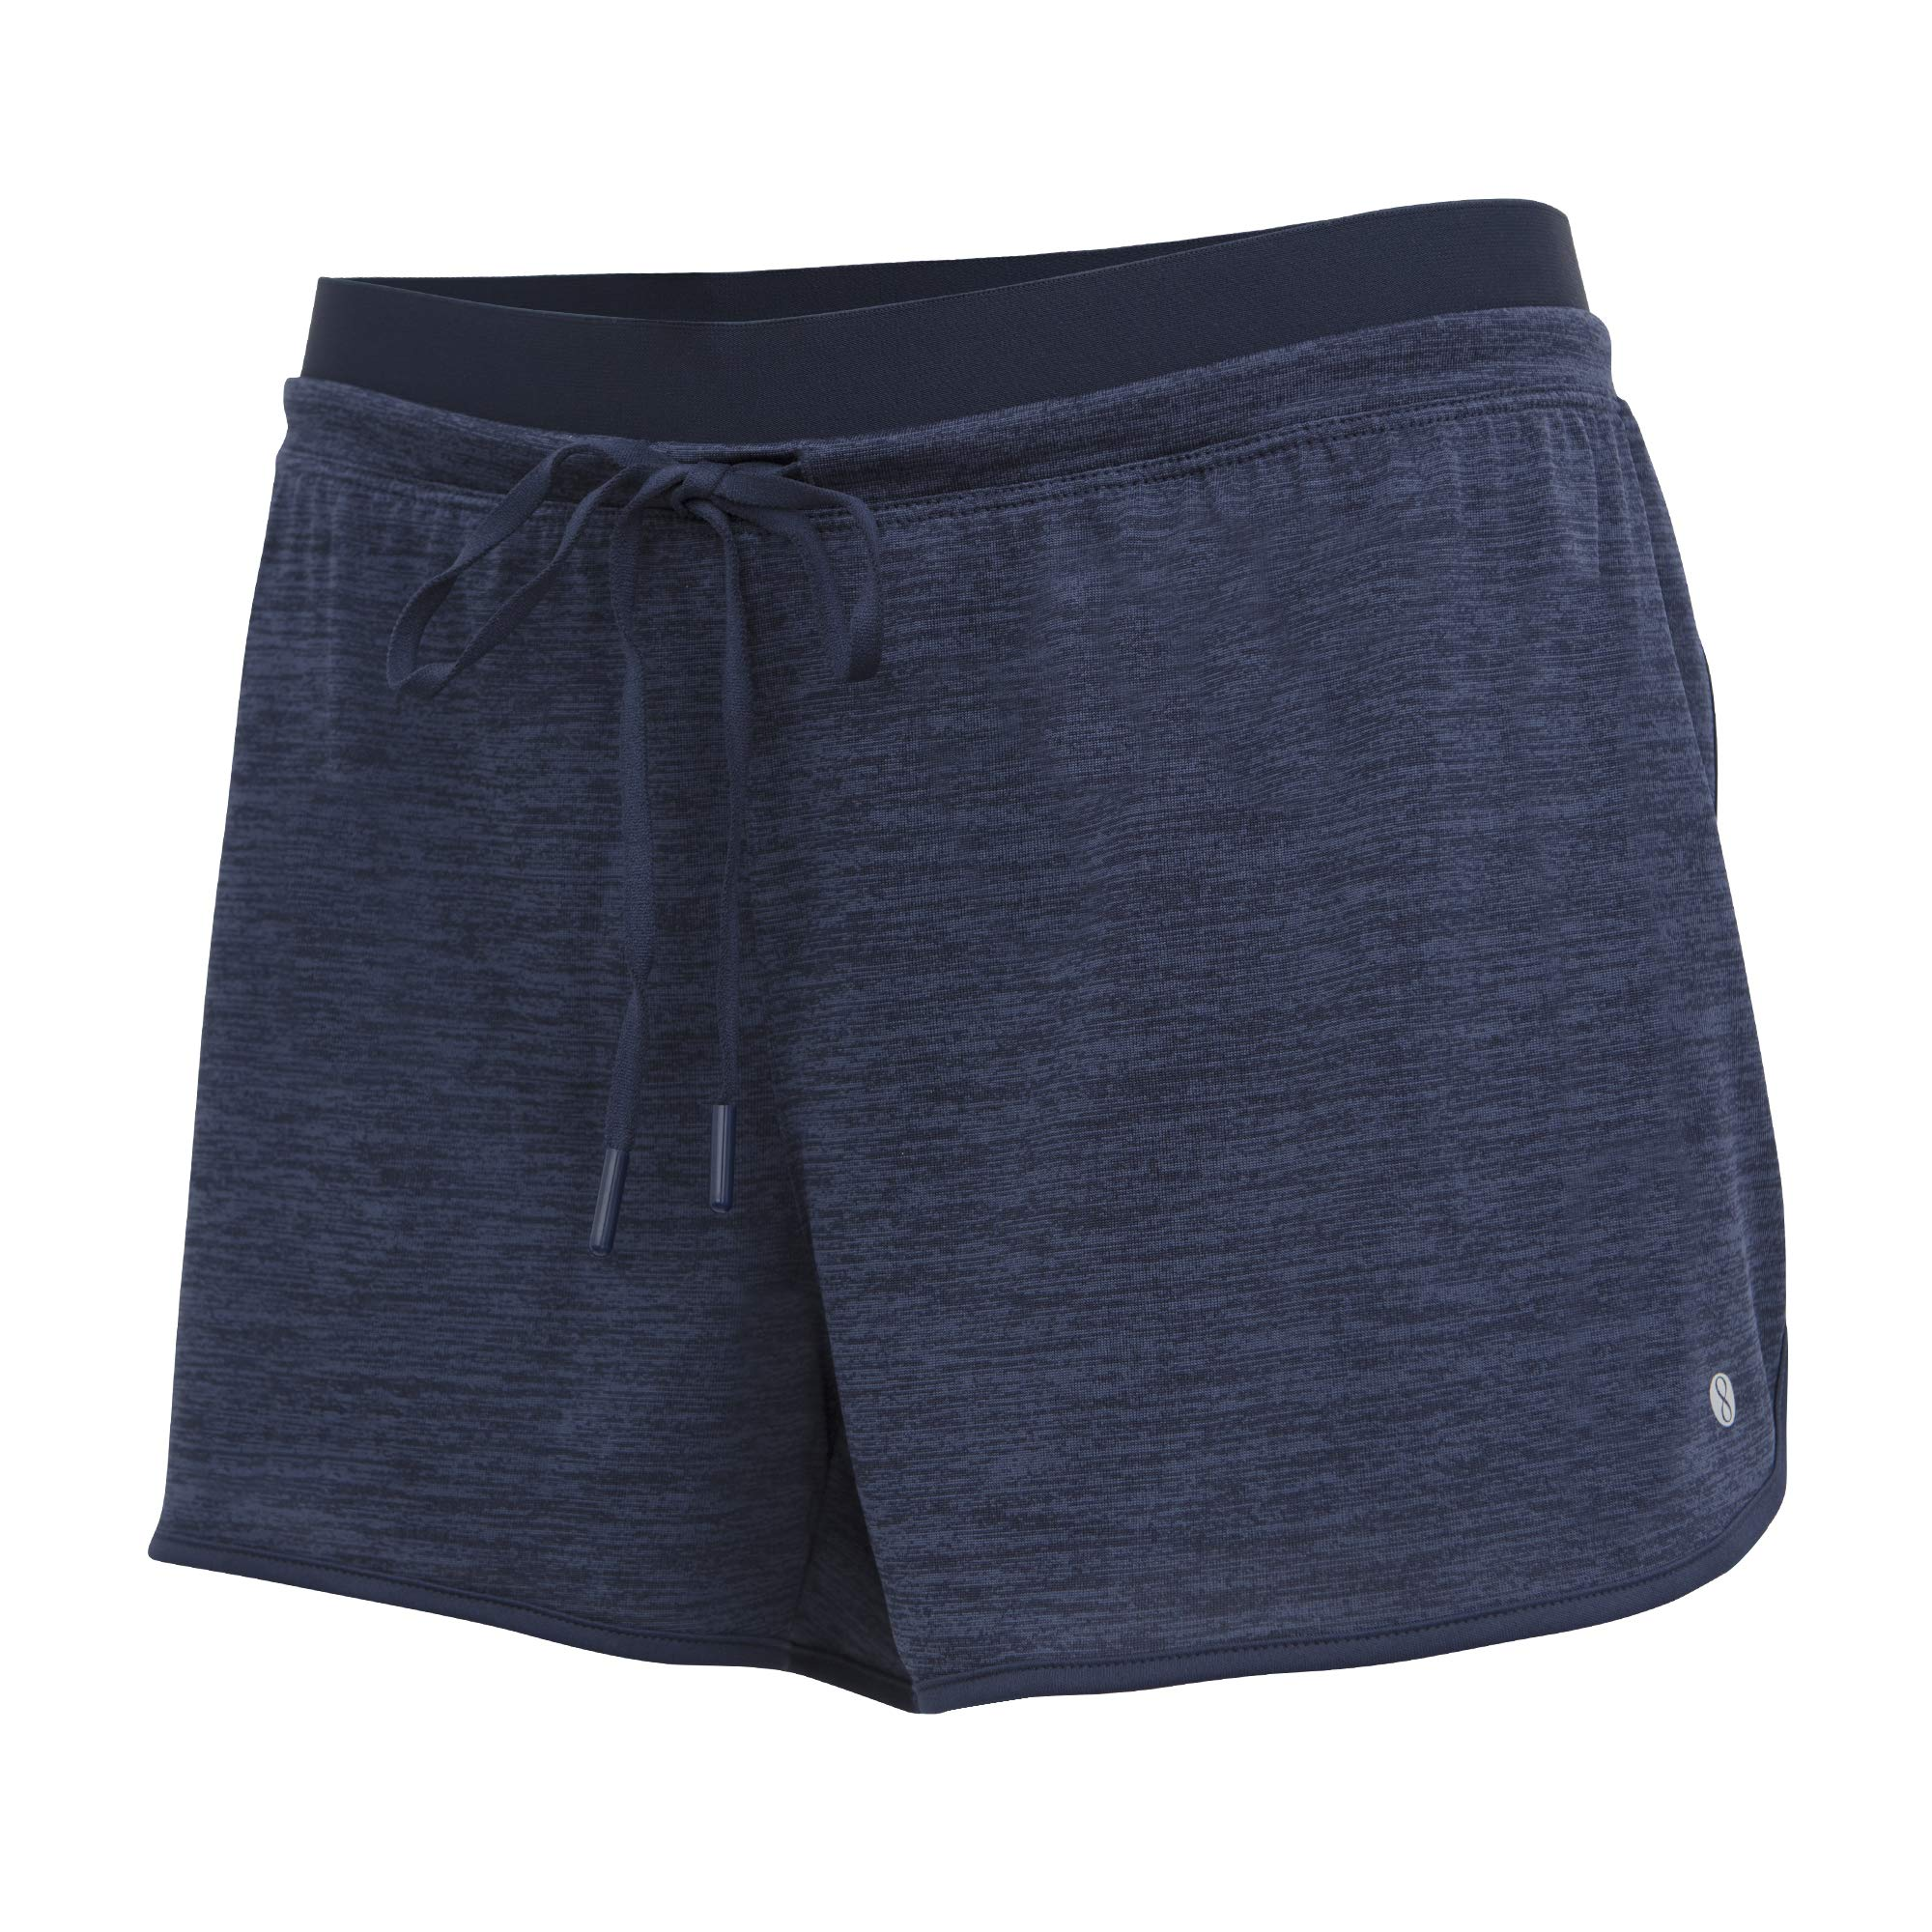 Layer 8 Women's Knit and Woven Quick Dry Two in One Running Yoga Work Out Short with Compression Shorts Underneath